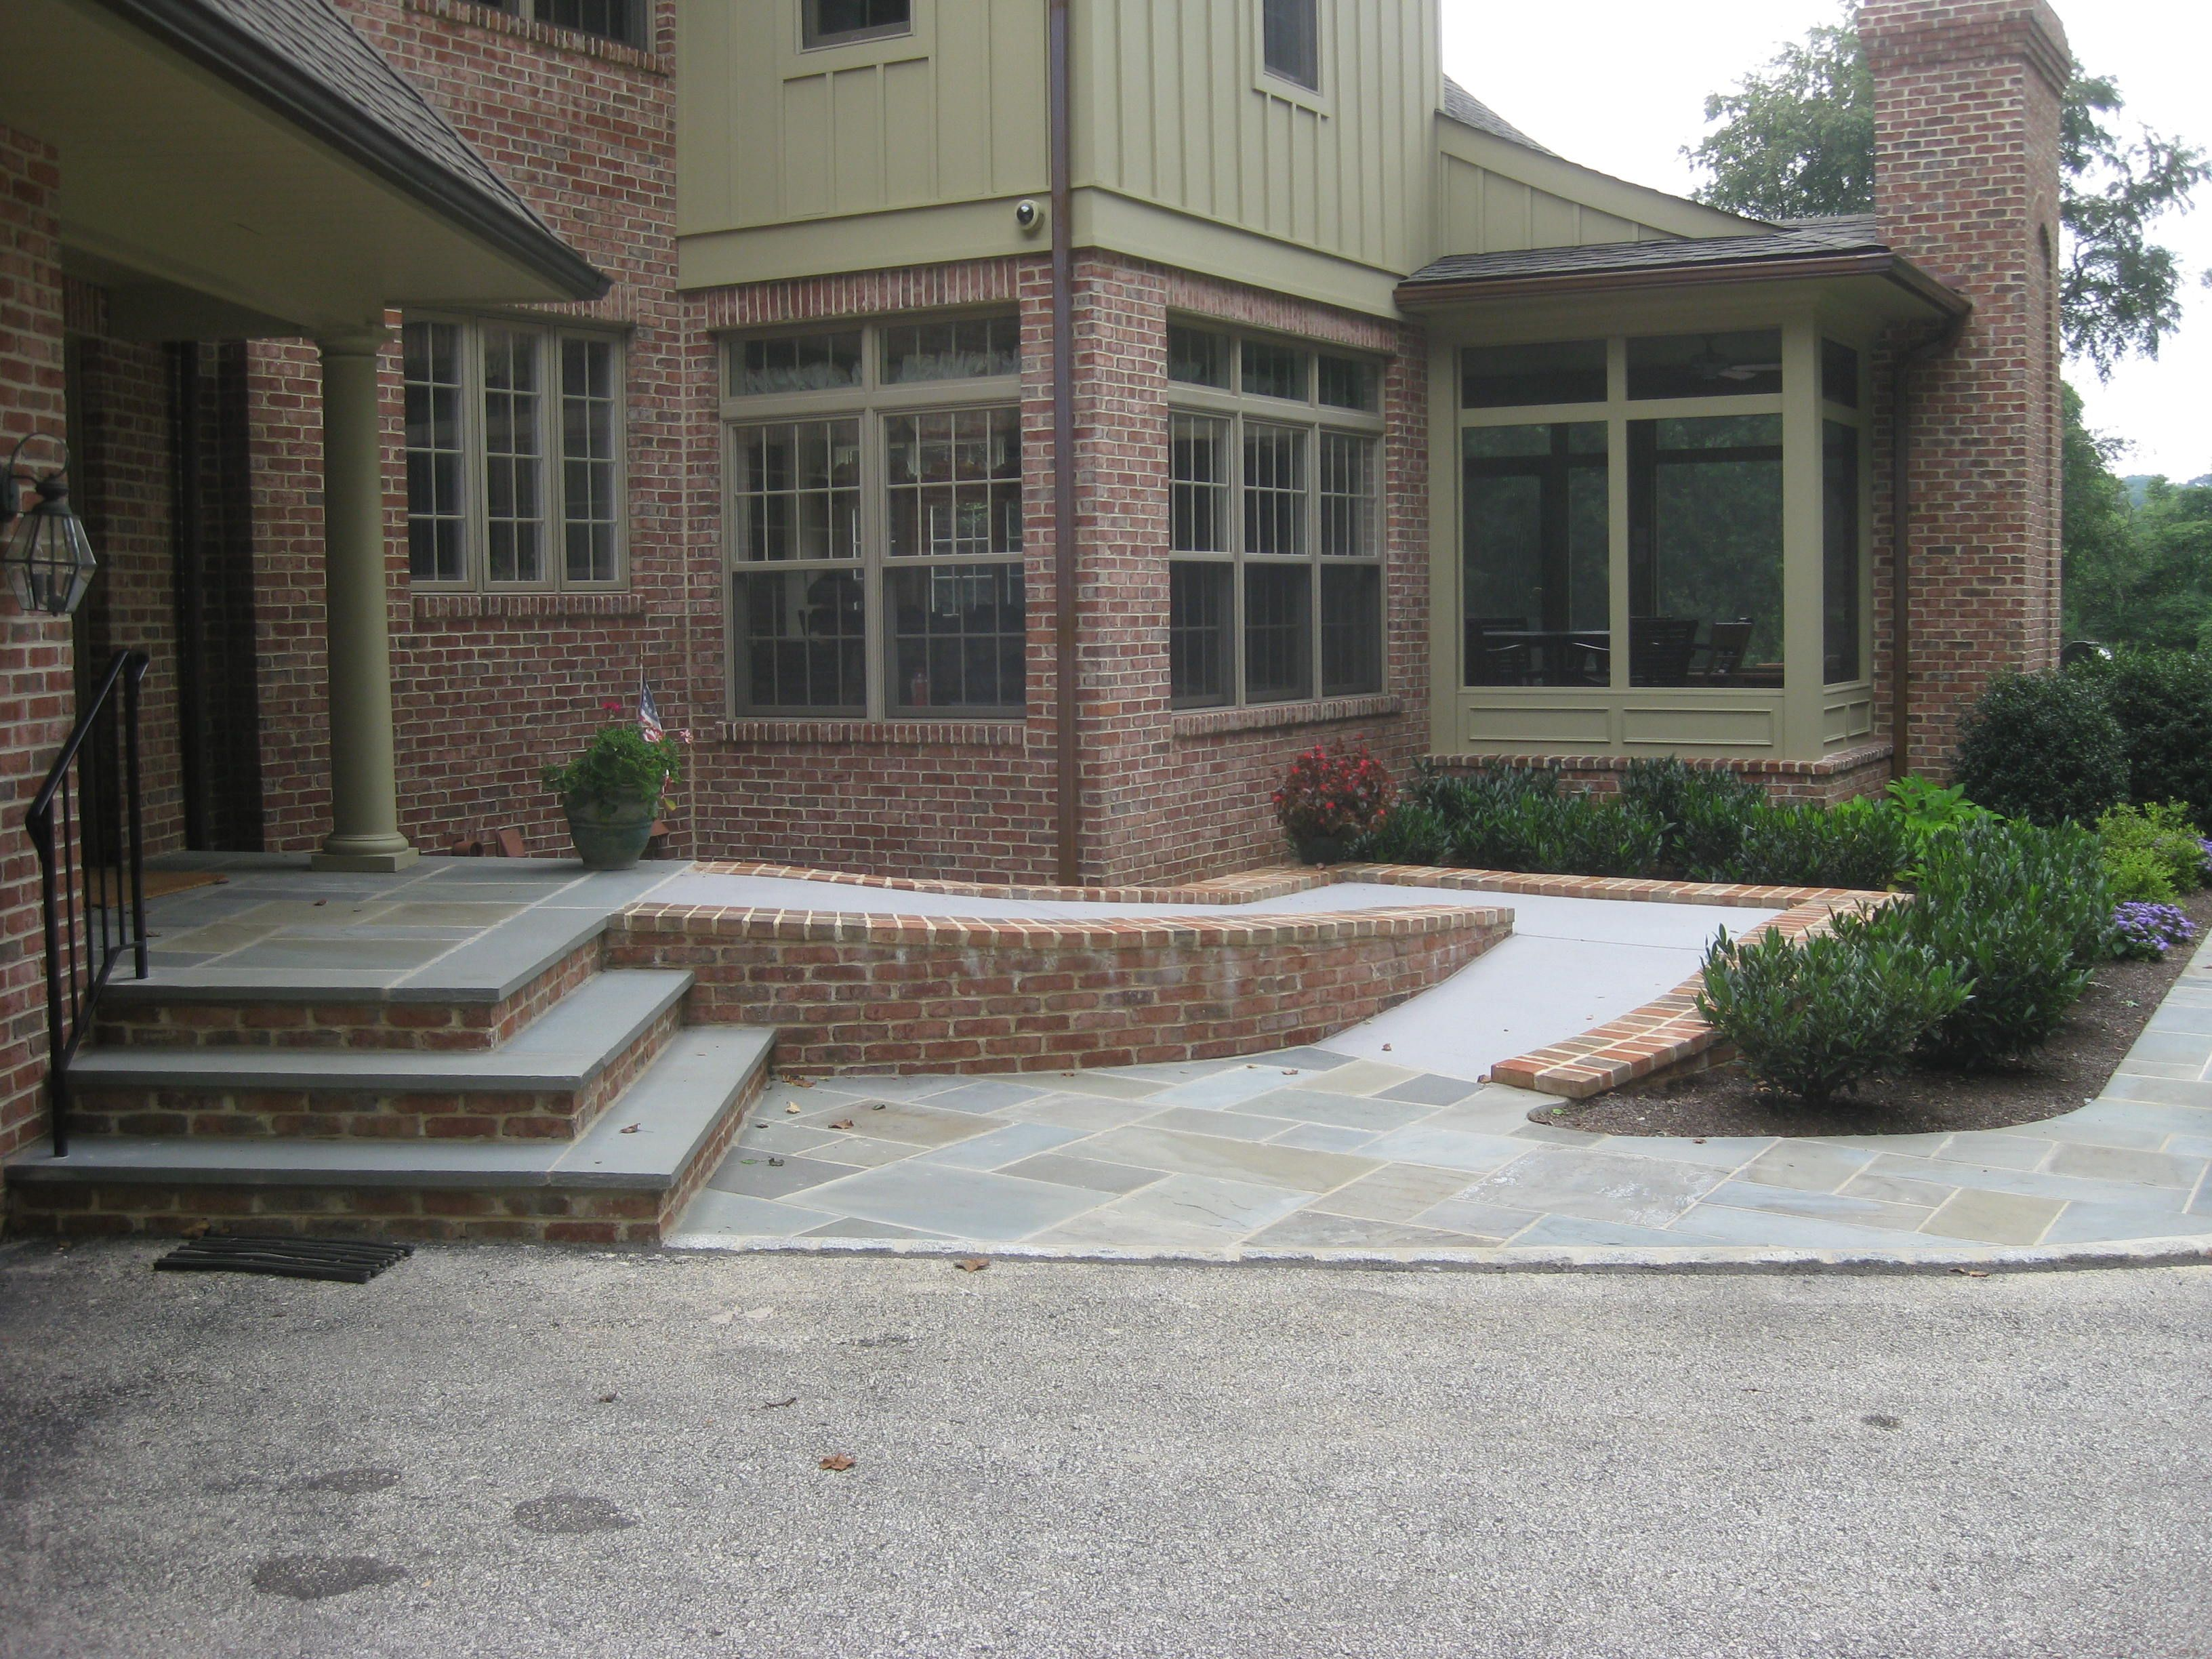 Wheelchair ramps for stairs - Flagstone And Brick Steps And Heated Handicap Ramp